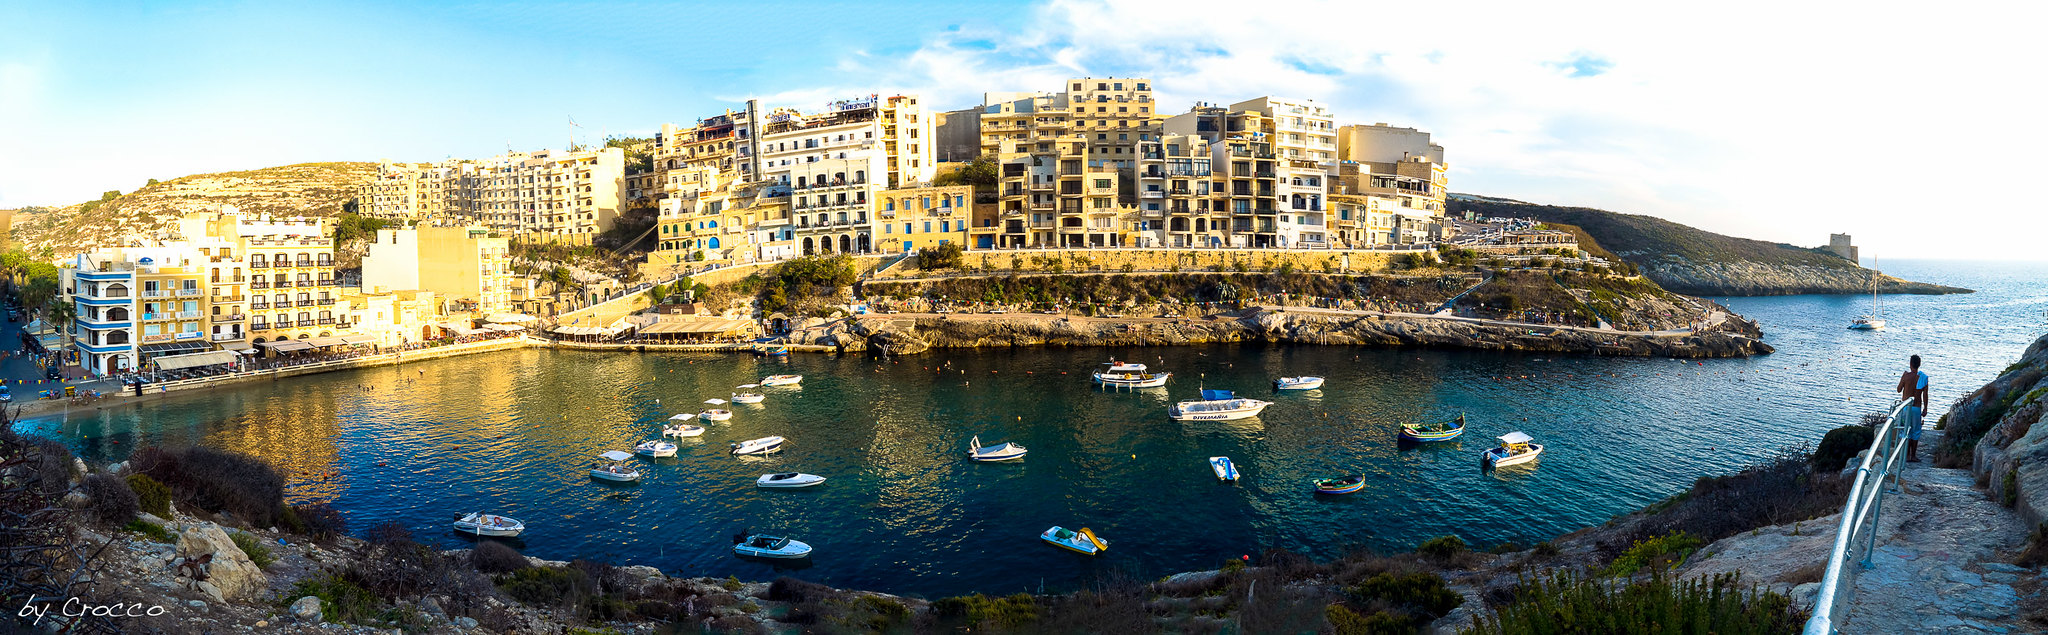 Xlendi Bay Panorama